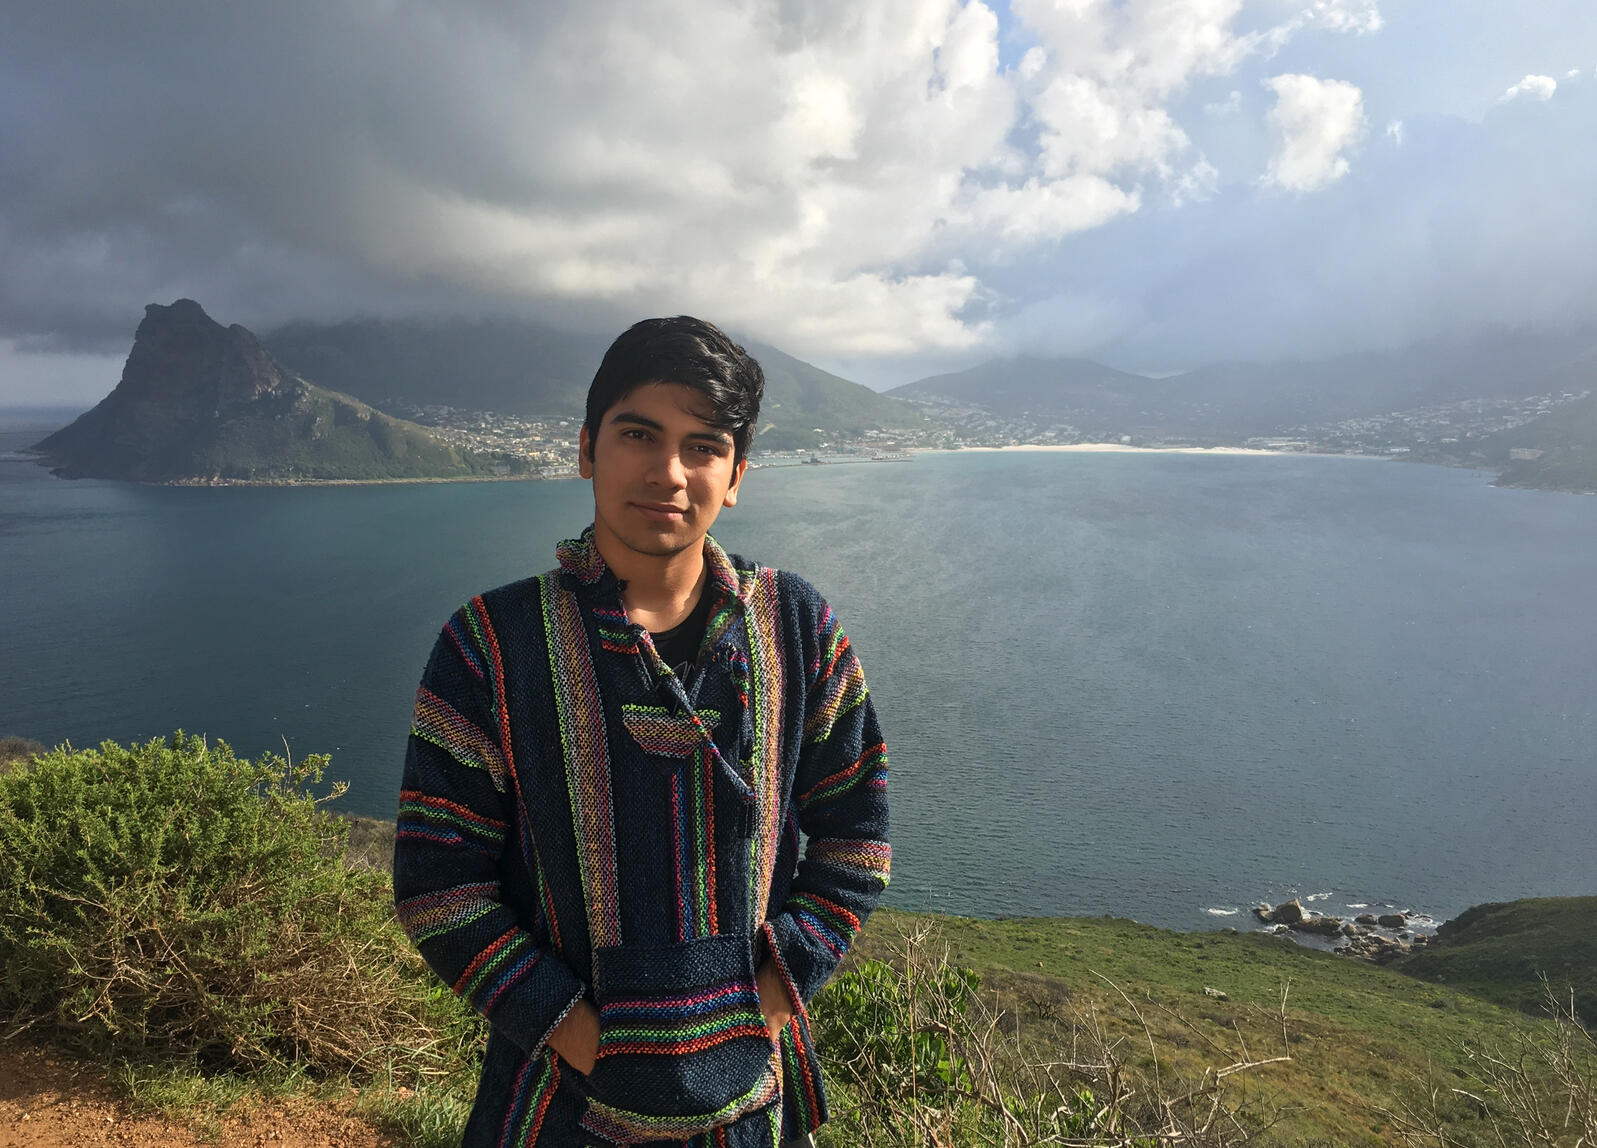 Ponce participated in an Experiment in International Living, a worldwide program offering cross-cultural education for high school students, in Cape Town, South Africa. Courtesy of Alonso Ponce